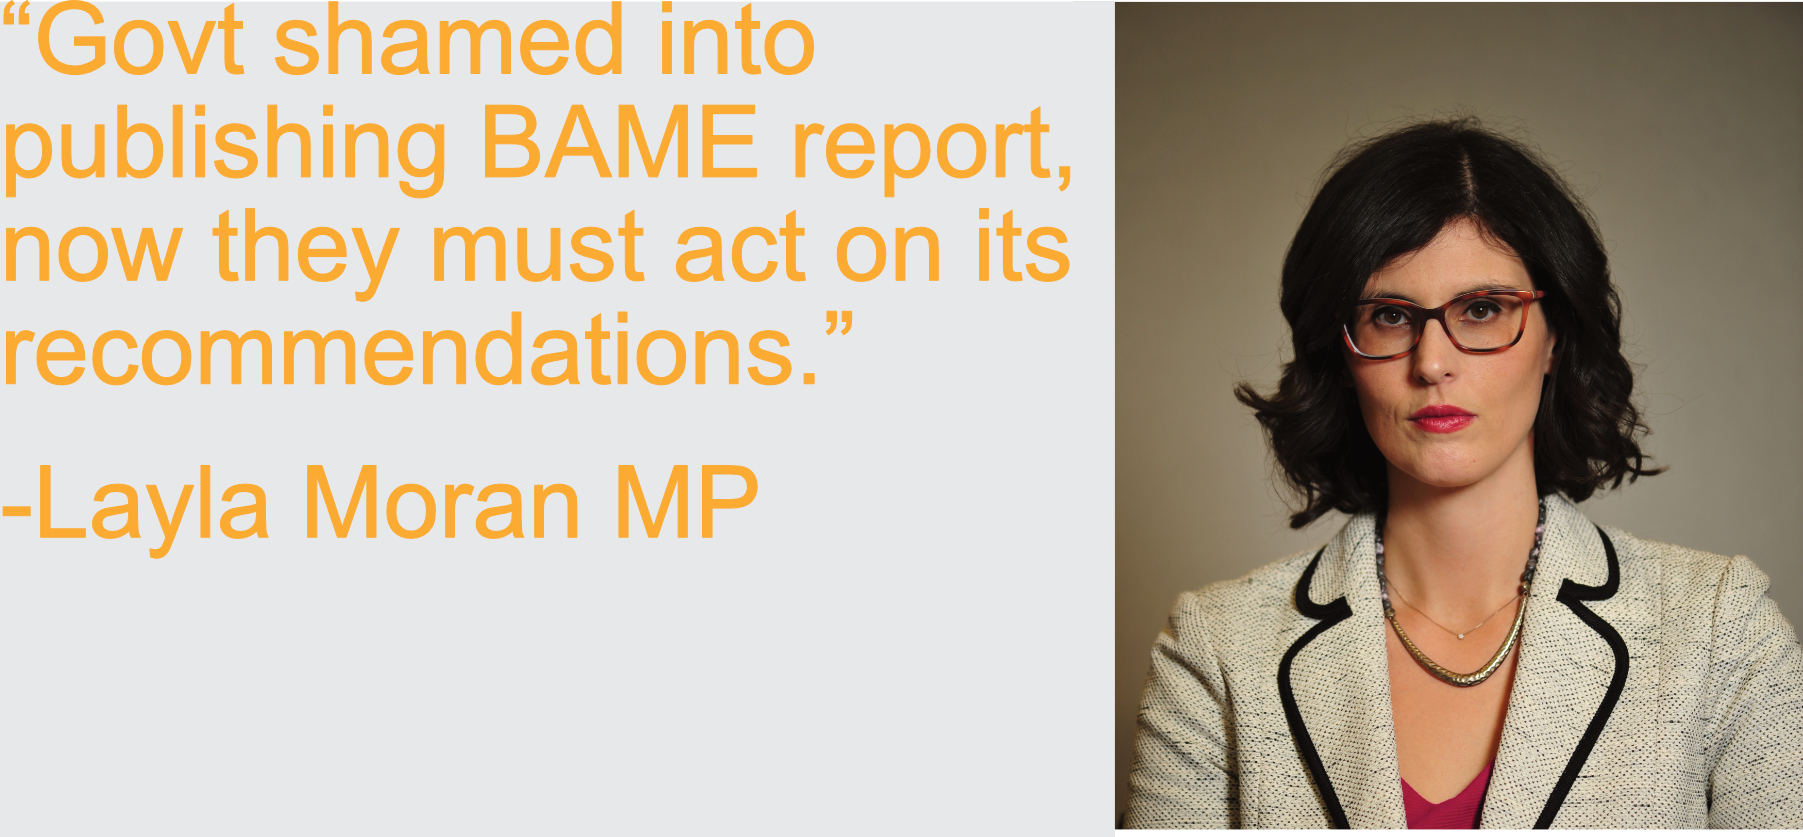 Govt shamed into publishing BAME report, now they must act on its recommendations - Layla Moran MP